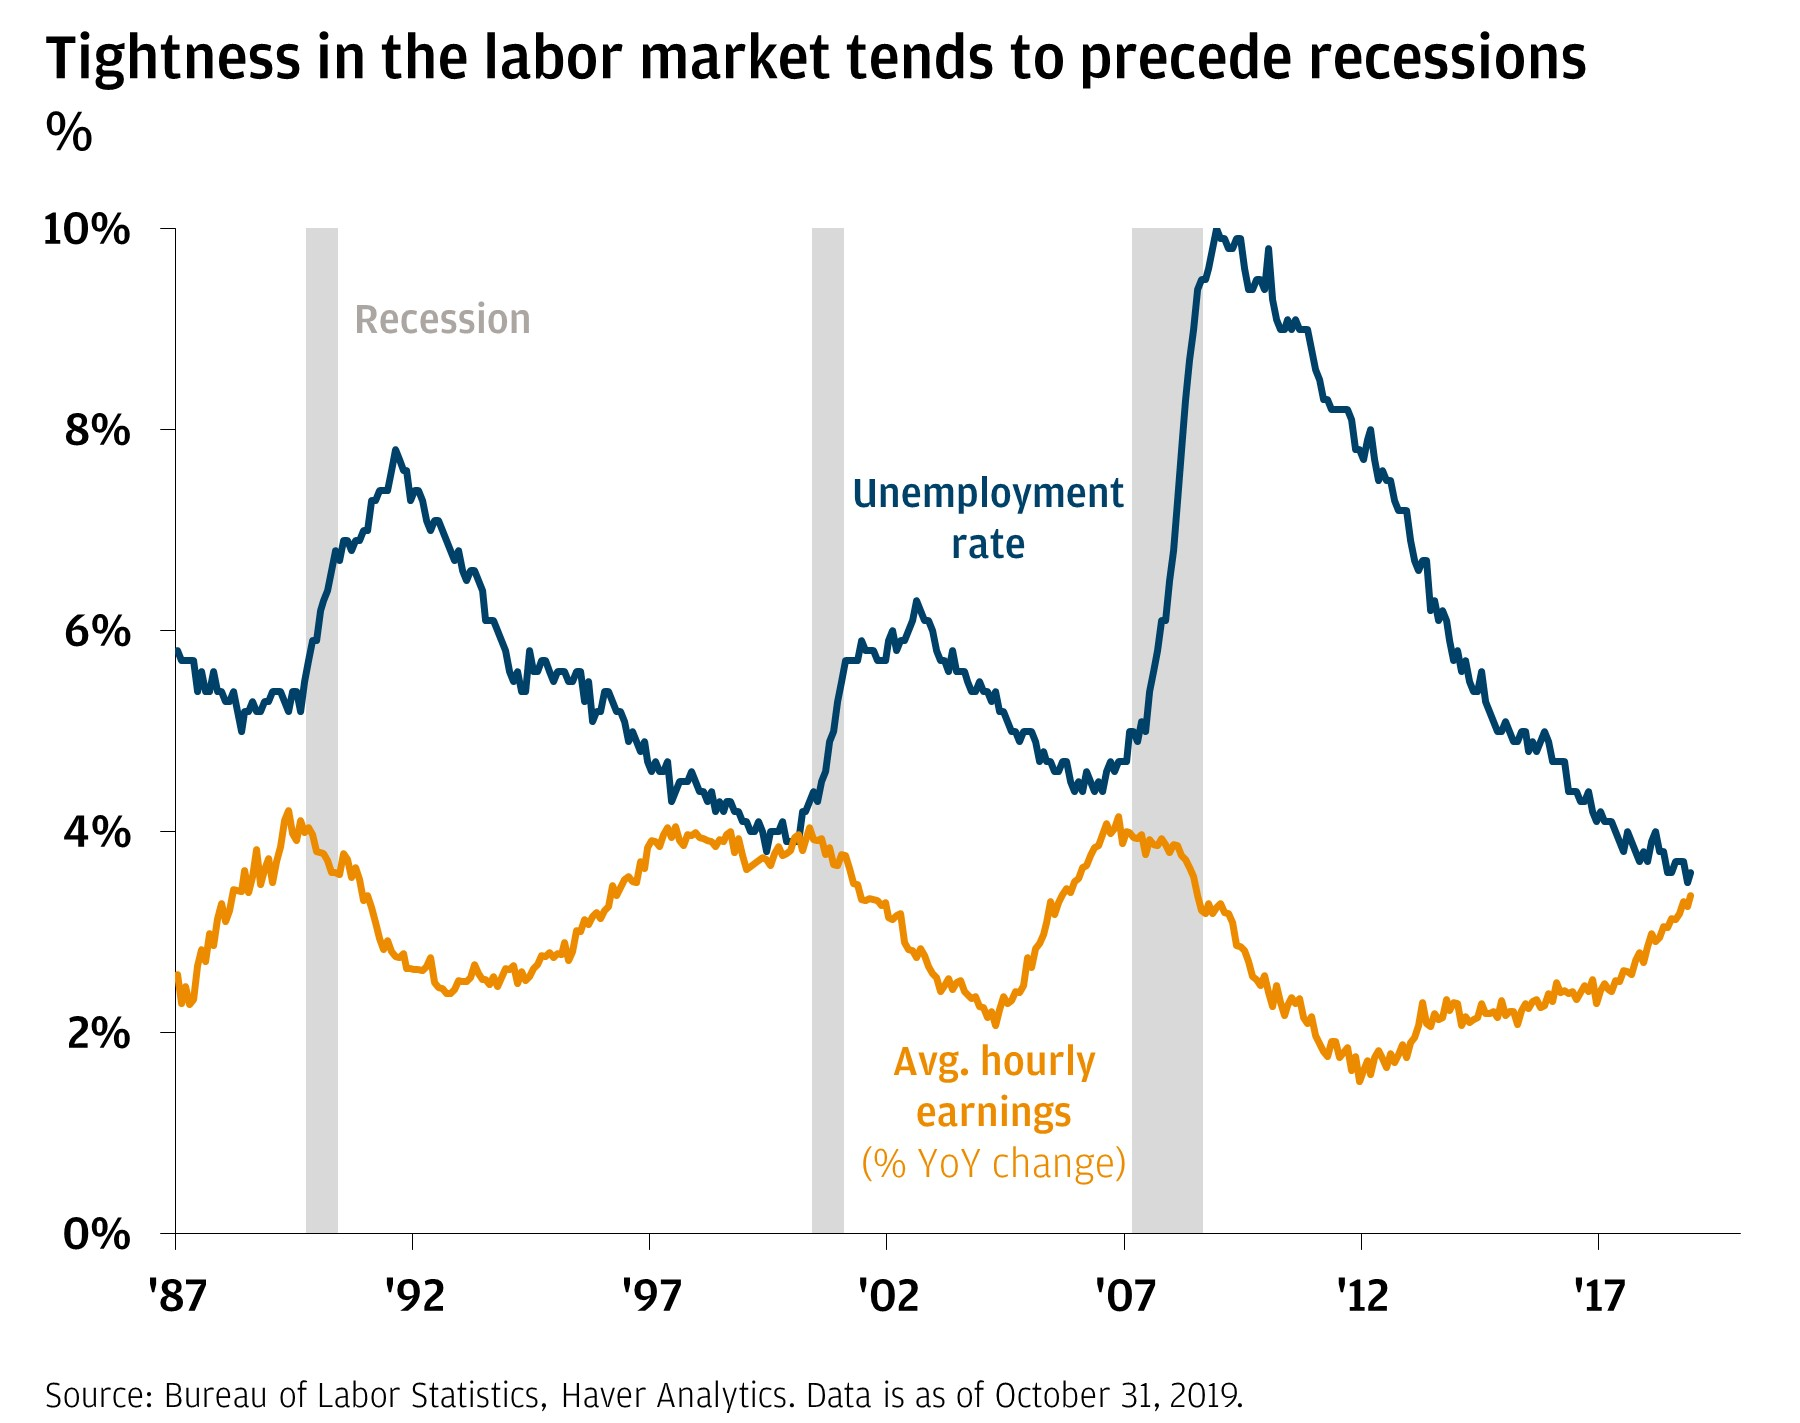 Tightness in the labor market tends to precede recessions